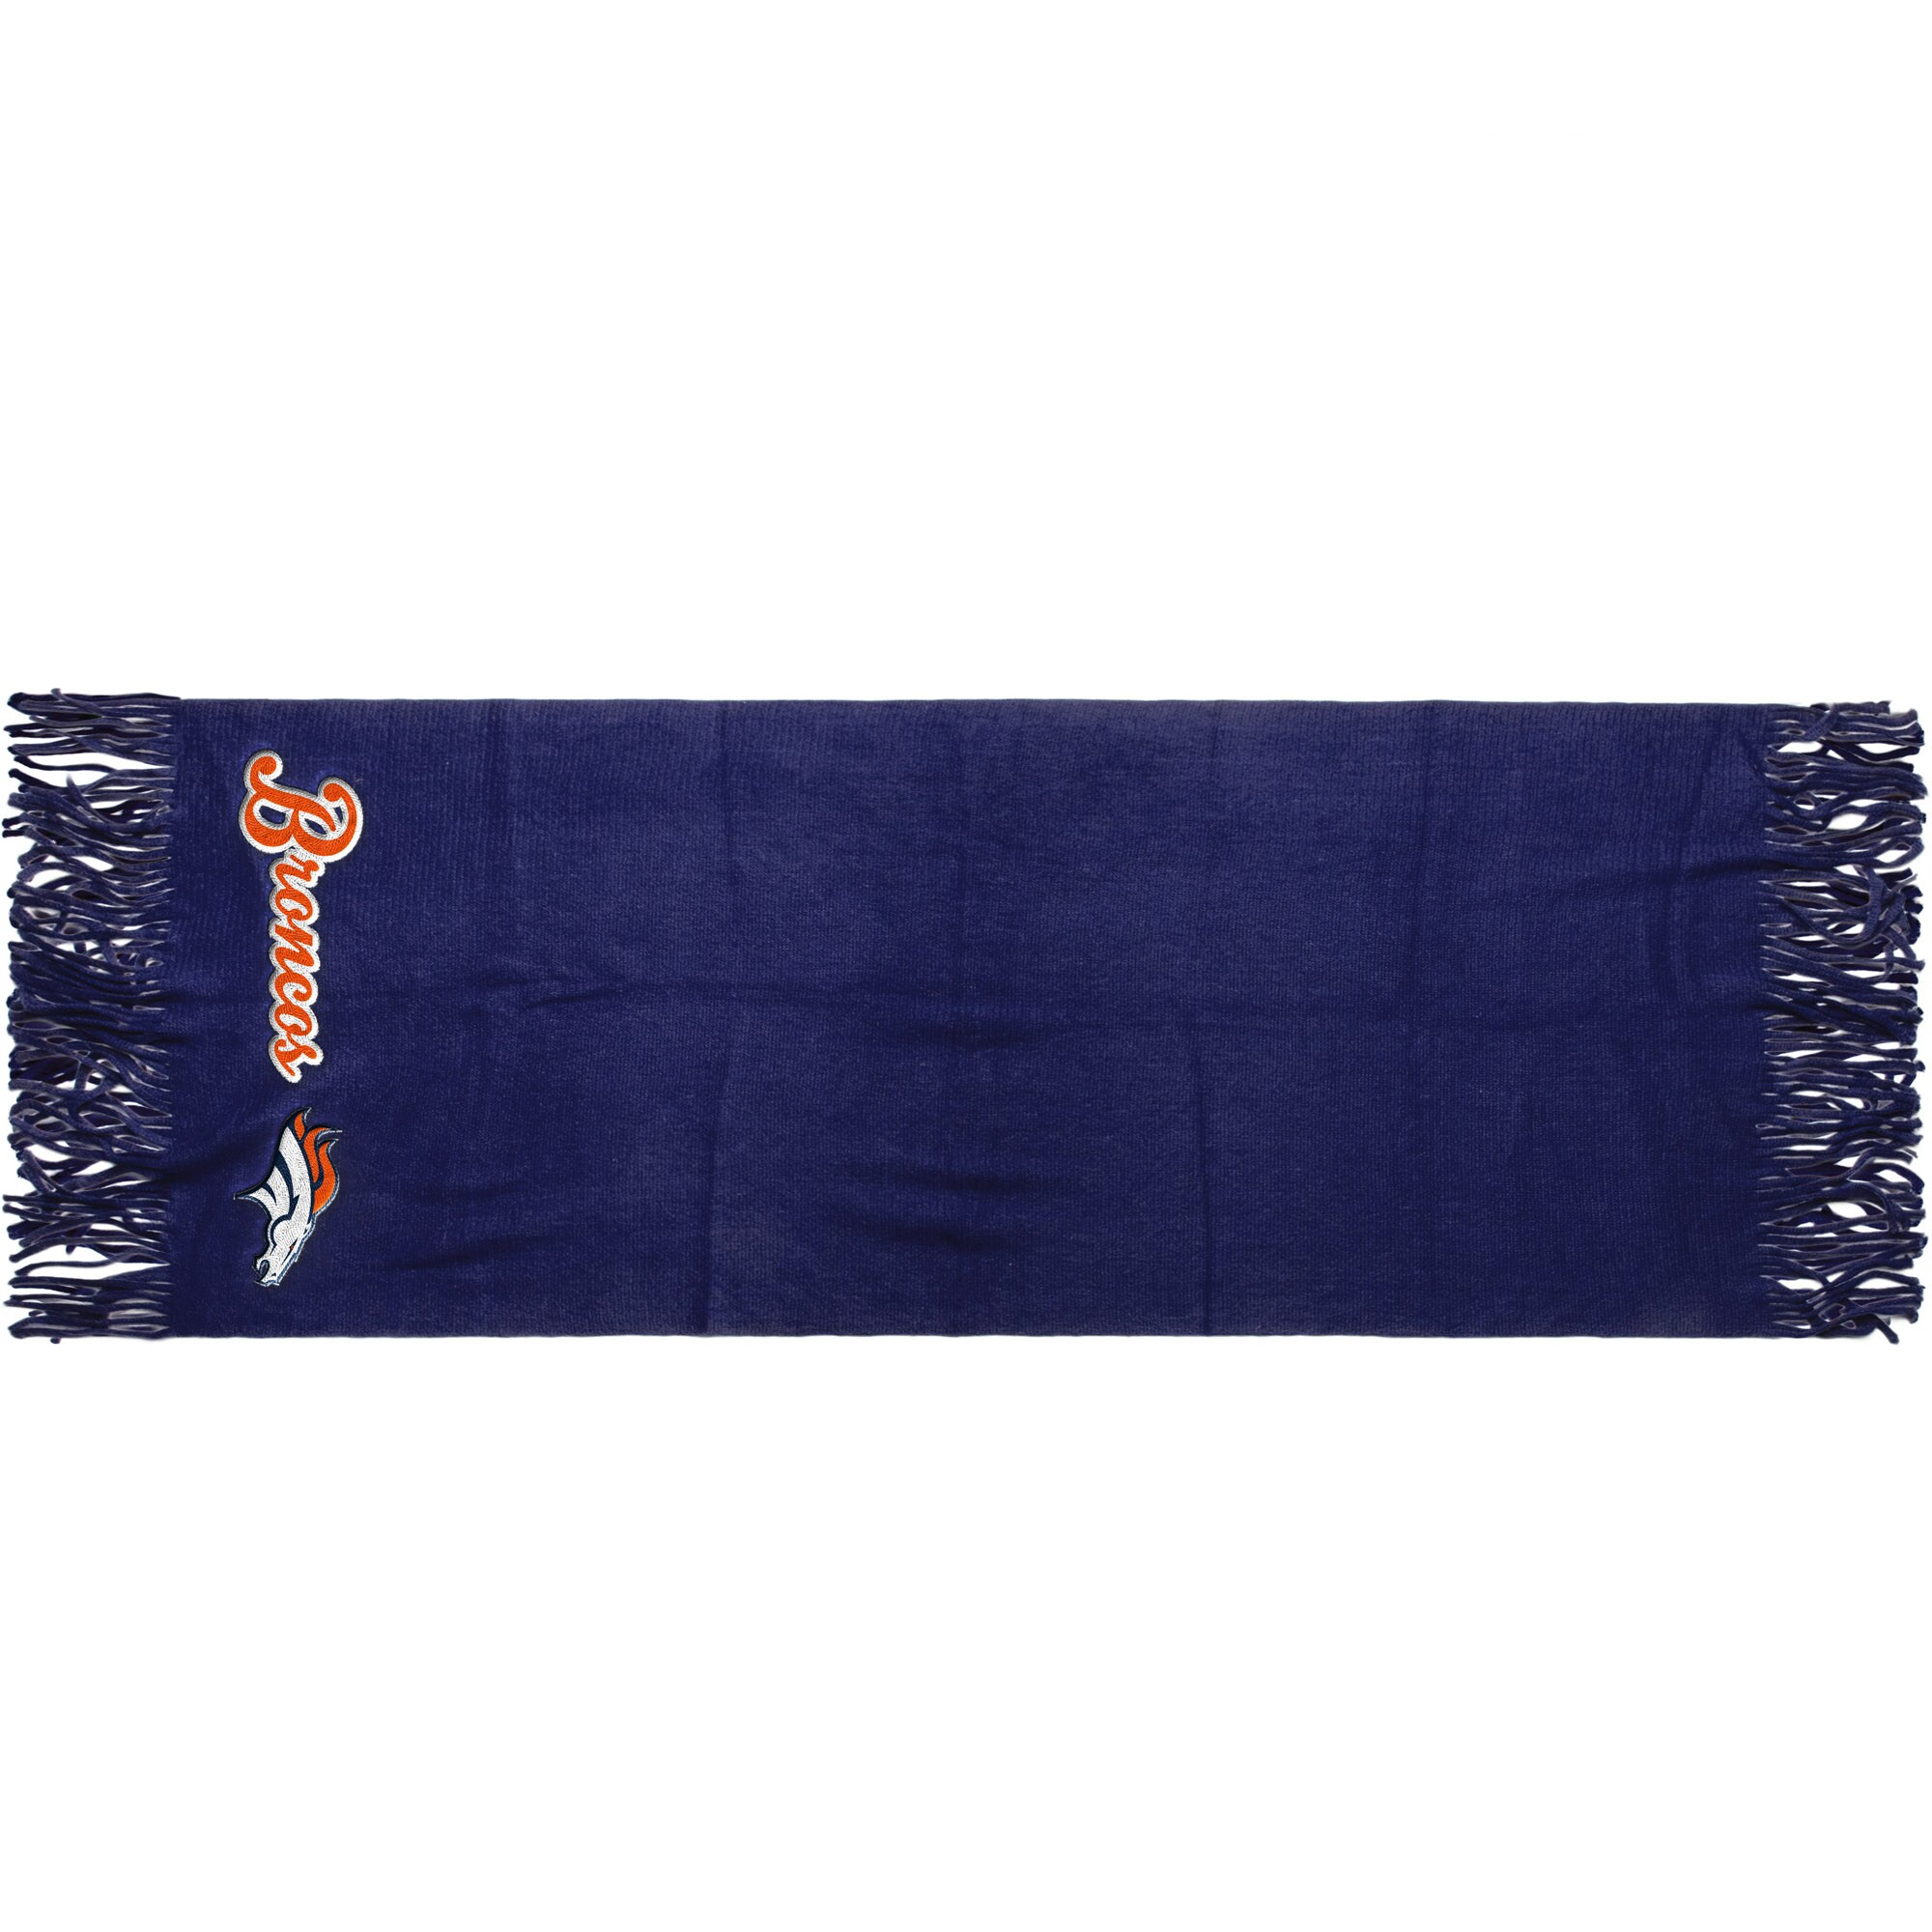 "Denver Broncos 81"" x 27"" Oversized Fringed Scarf"